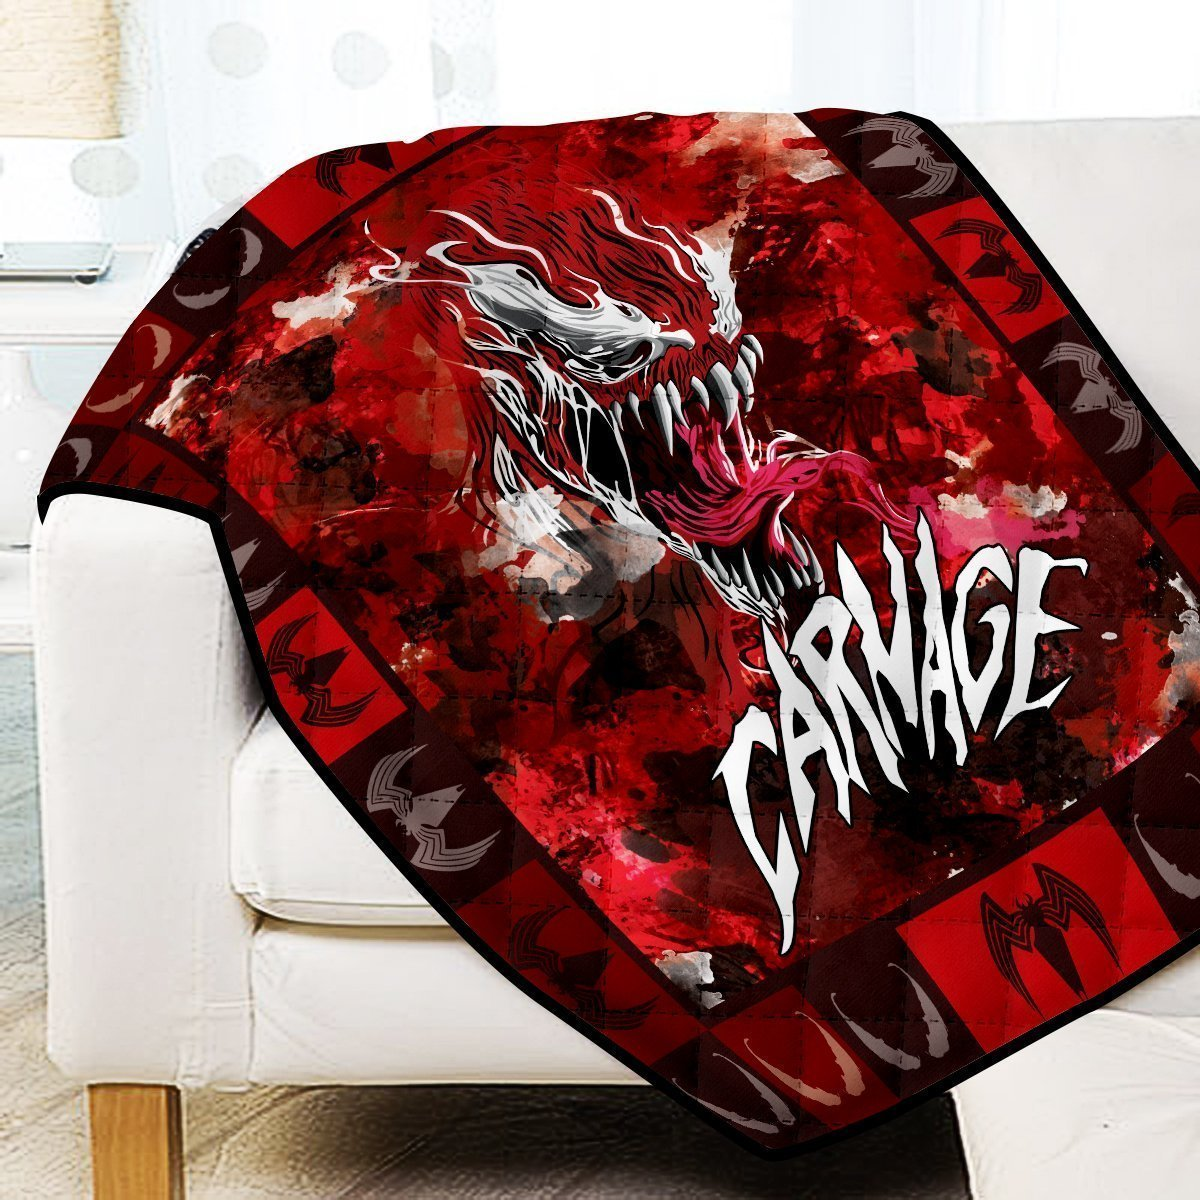 Carnage Symbiote Quilt Blanket V2 Official Merch FDM3009 Twin Official Otaku Treat Merch